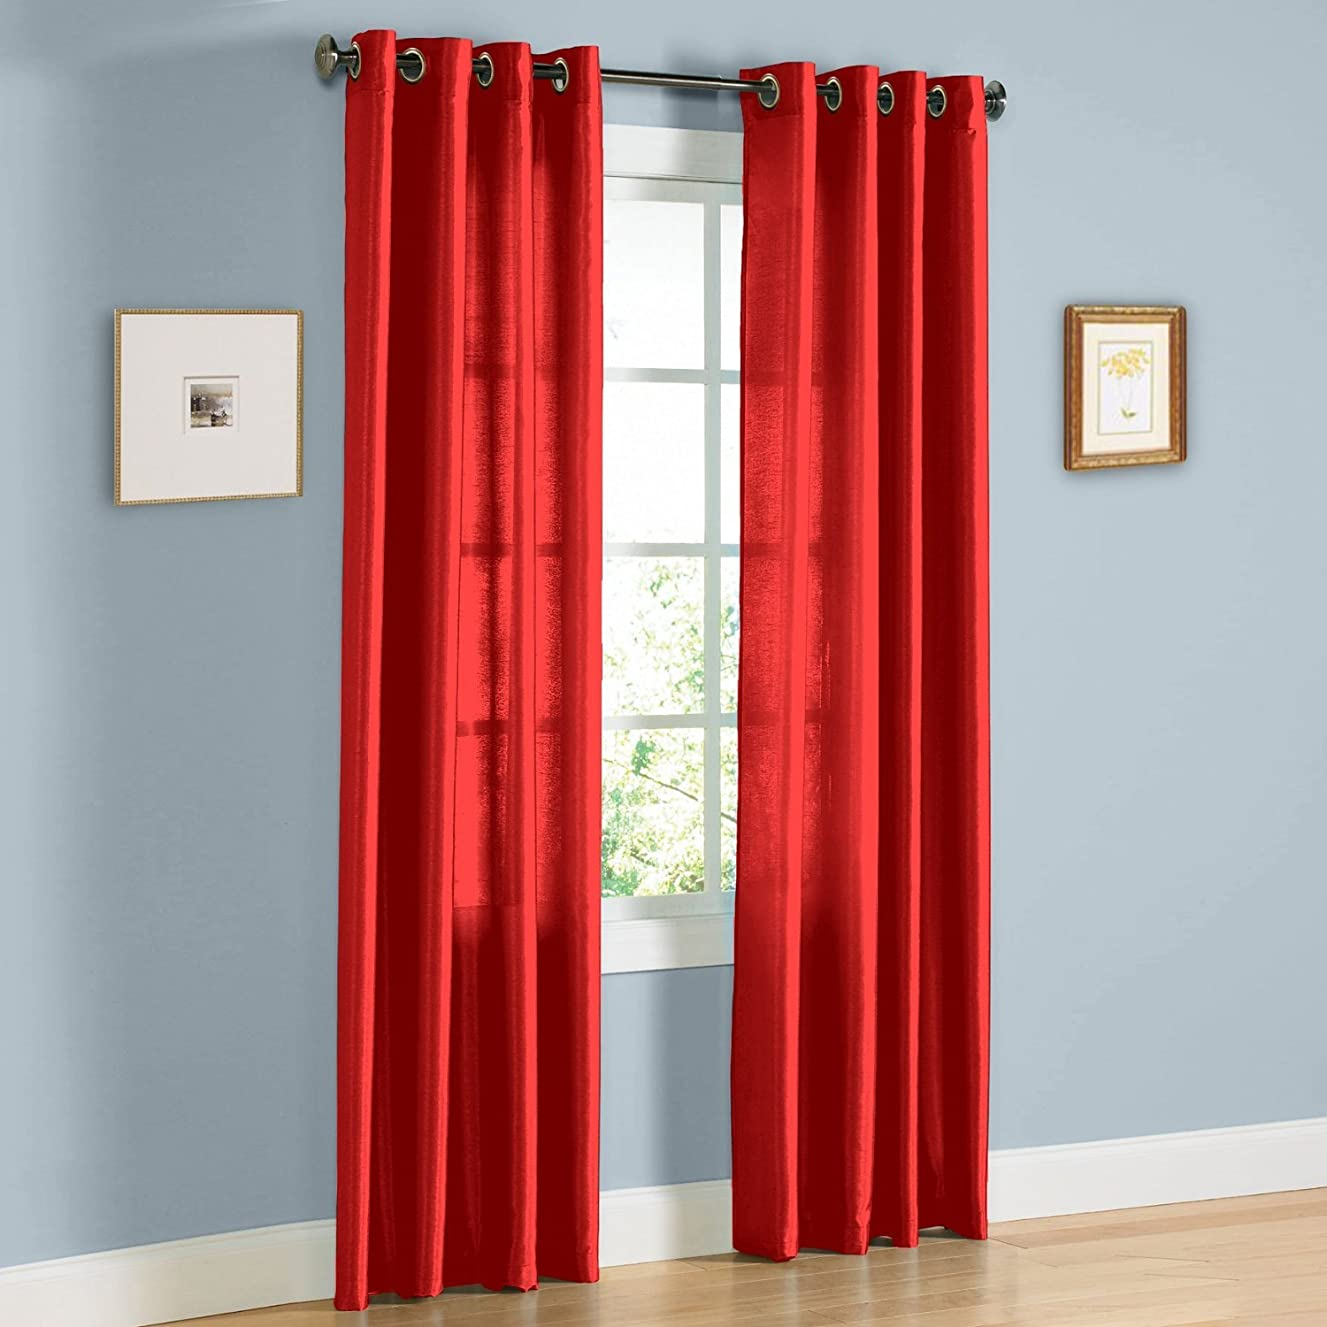 Gorgeous Home 1 PANEL SOLID BRIGHT RED SEMI SHEER WINDOW FAUX SILK ANTIQUE BRONZE GROMMETS CURTAIN DRAPES MIRA AVAILABLE IN DIFFERENT SIZES (63